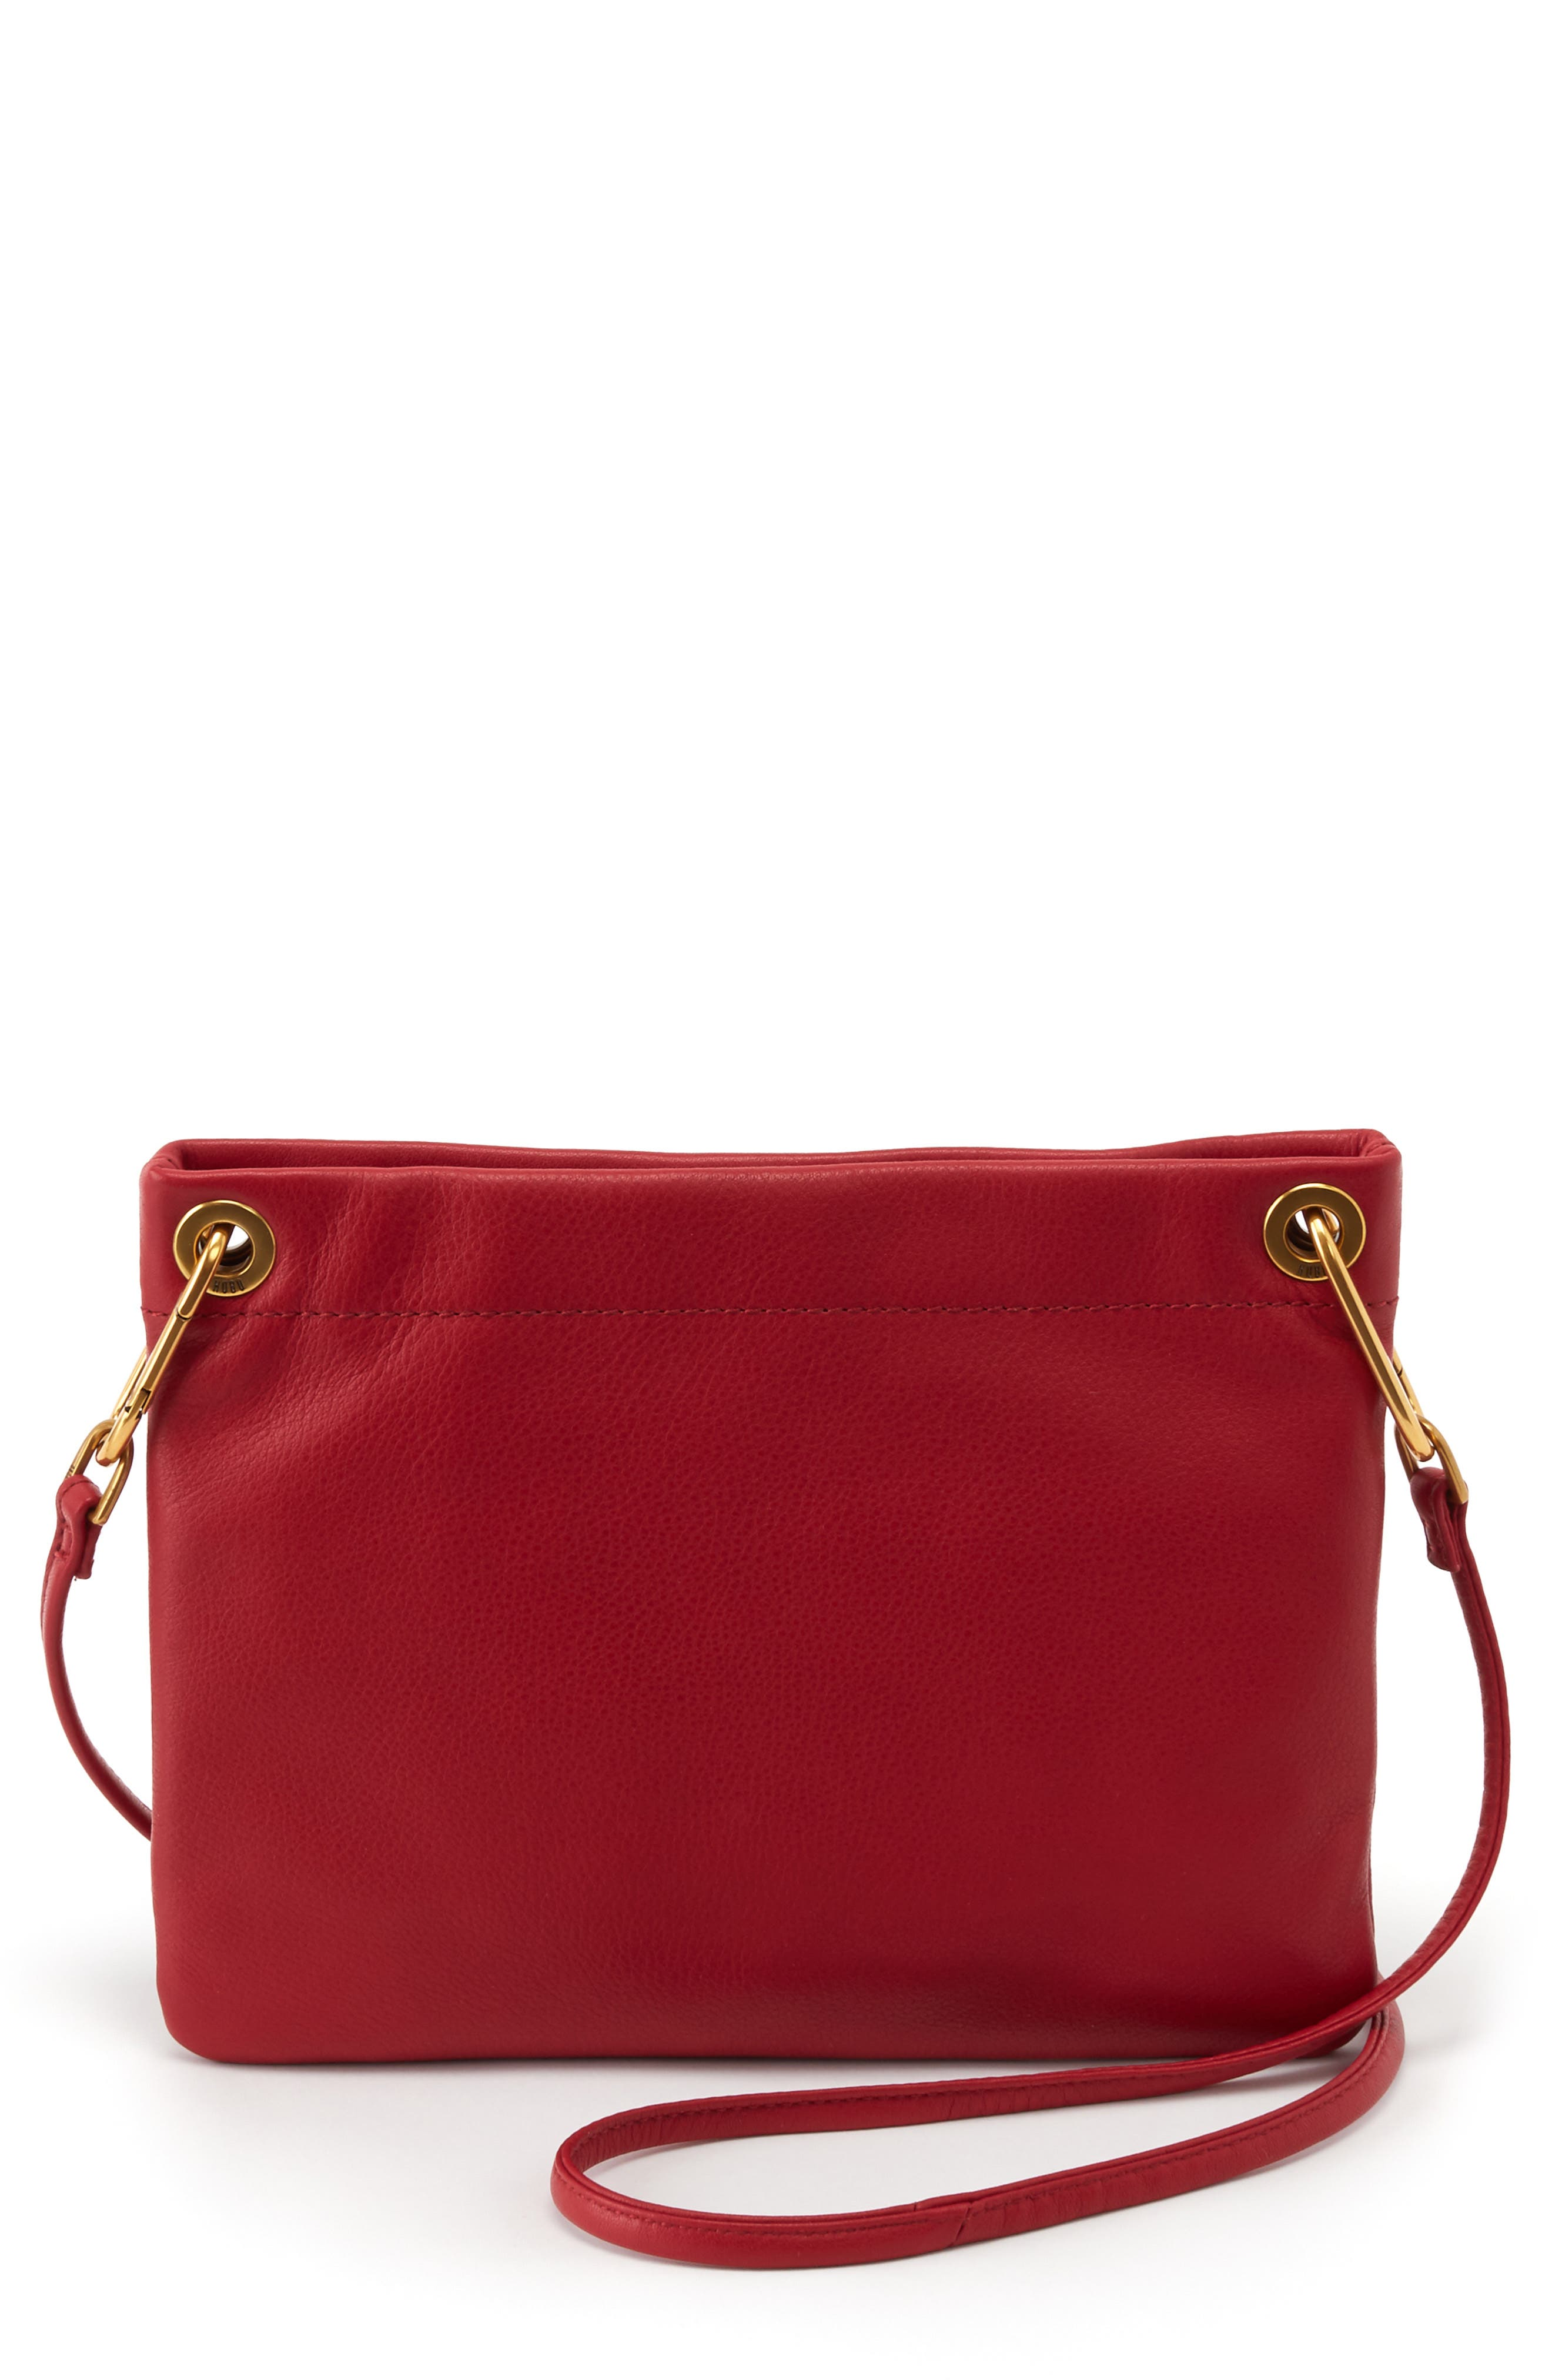 Every Convertible Leather Crossbody Bag